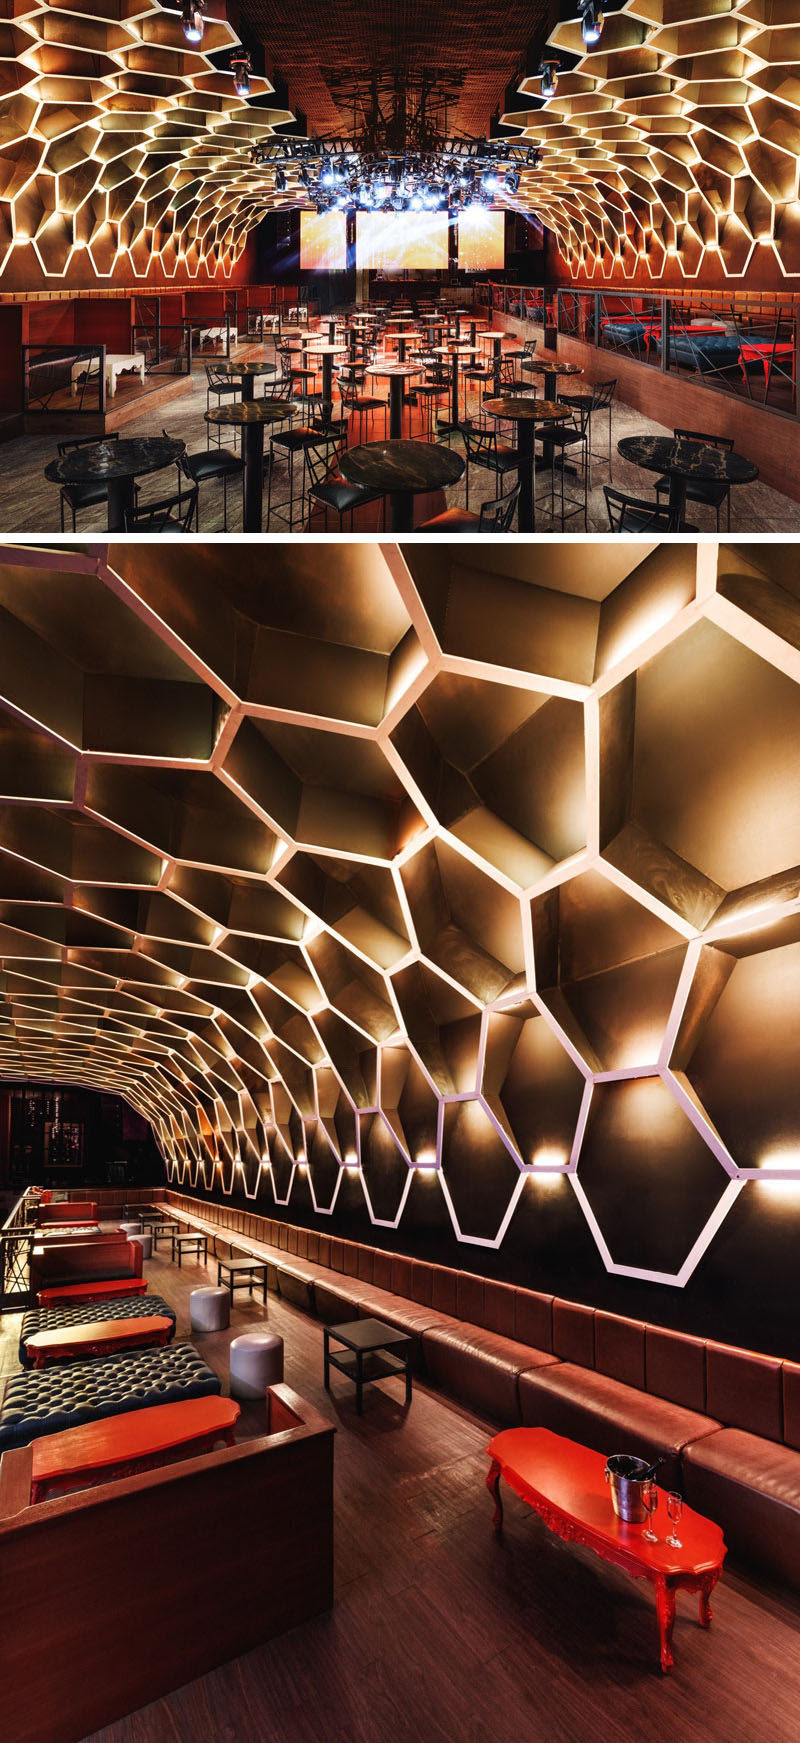 Honeycomb shapes create a dramatic look in this modern nightclub.